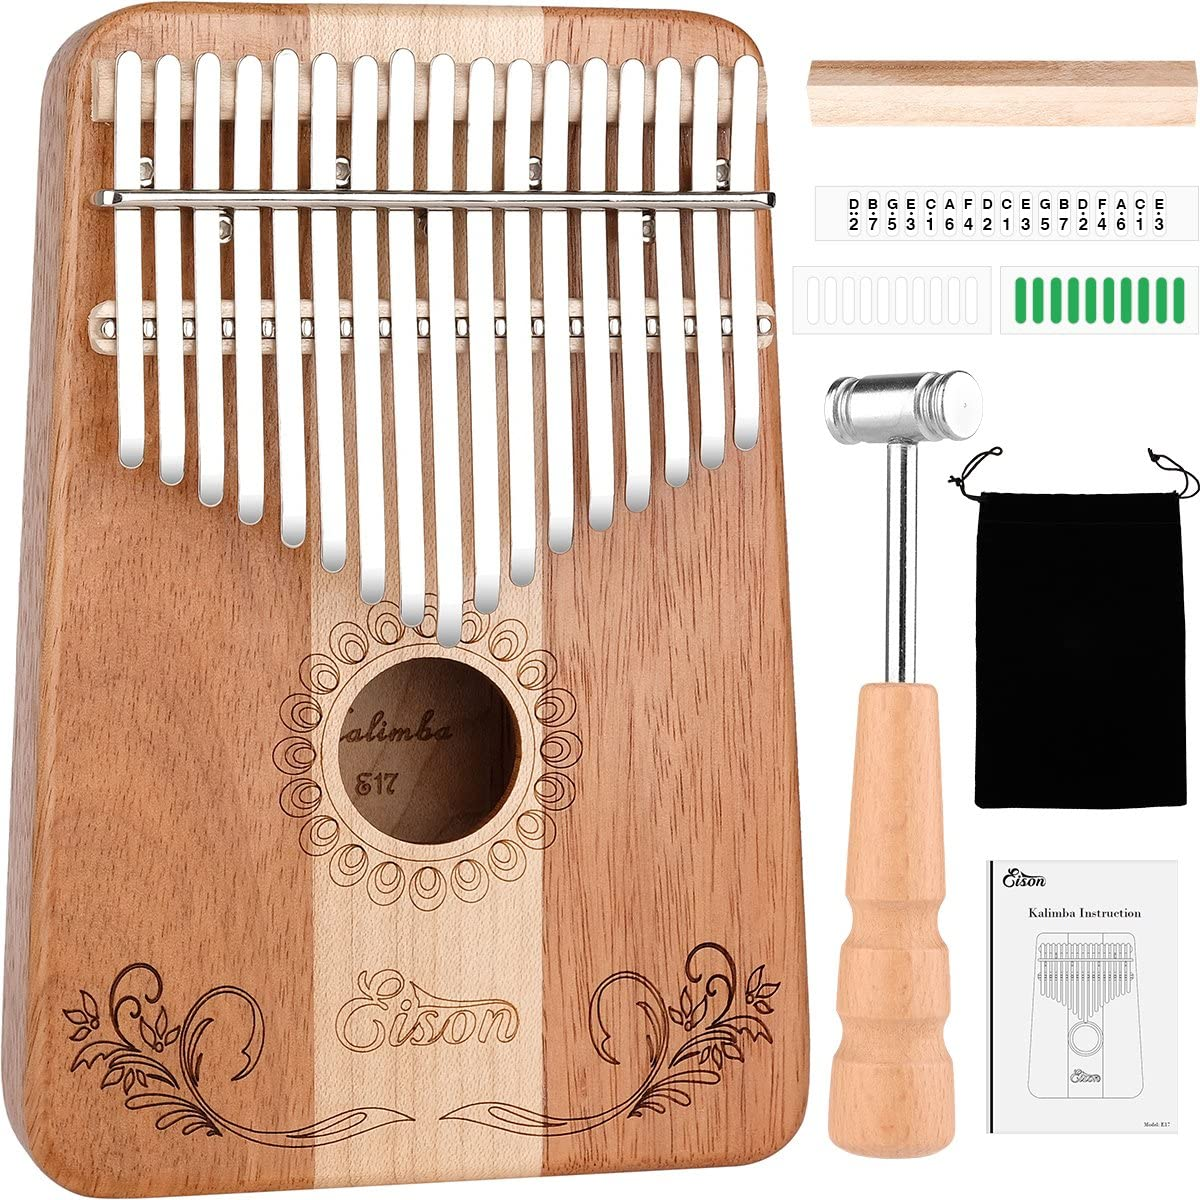 Kalimba,Eison Kalimba with Key Locking System Thumb Piano Finger Piano 17 keys with Instruction and Tune Hammer, Solid Wood Mahogany & Maple Body- Best Gift for Music Fans Kids Adults